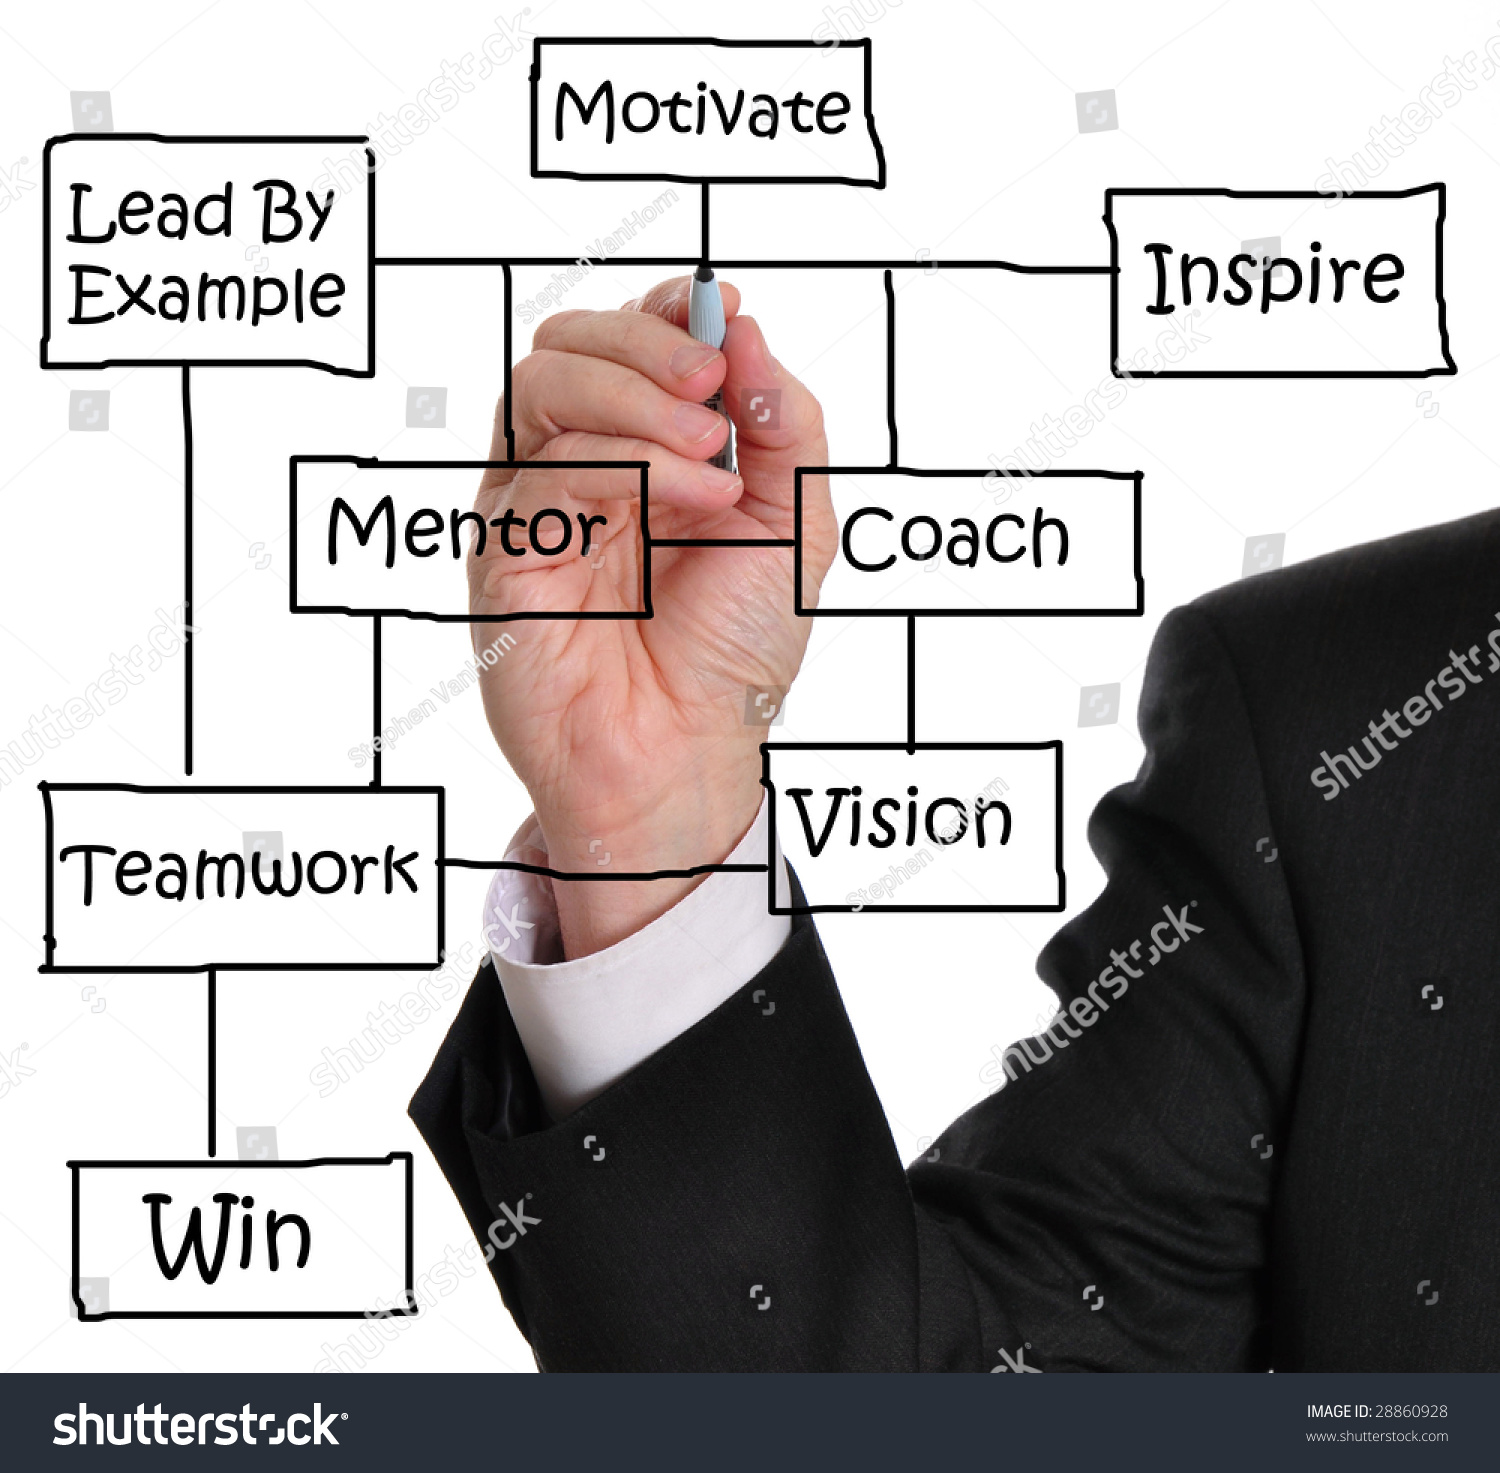 motivation concepts essay Further the essay provides arguments for the existing value of the concept of motivation for the managers and discusses the alternatives that are available for the managers to use the knowledge and develop strategies for increasing motivation at the workplace.